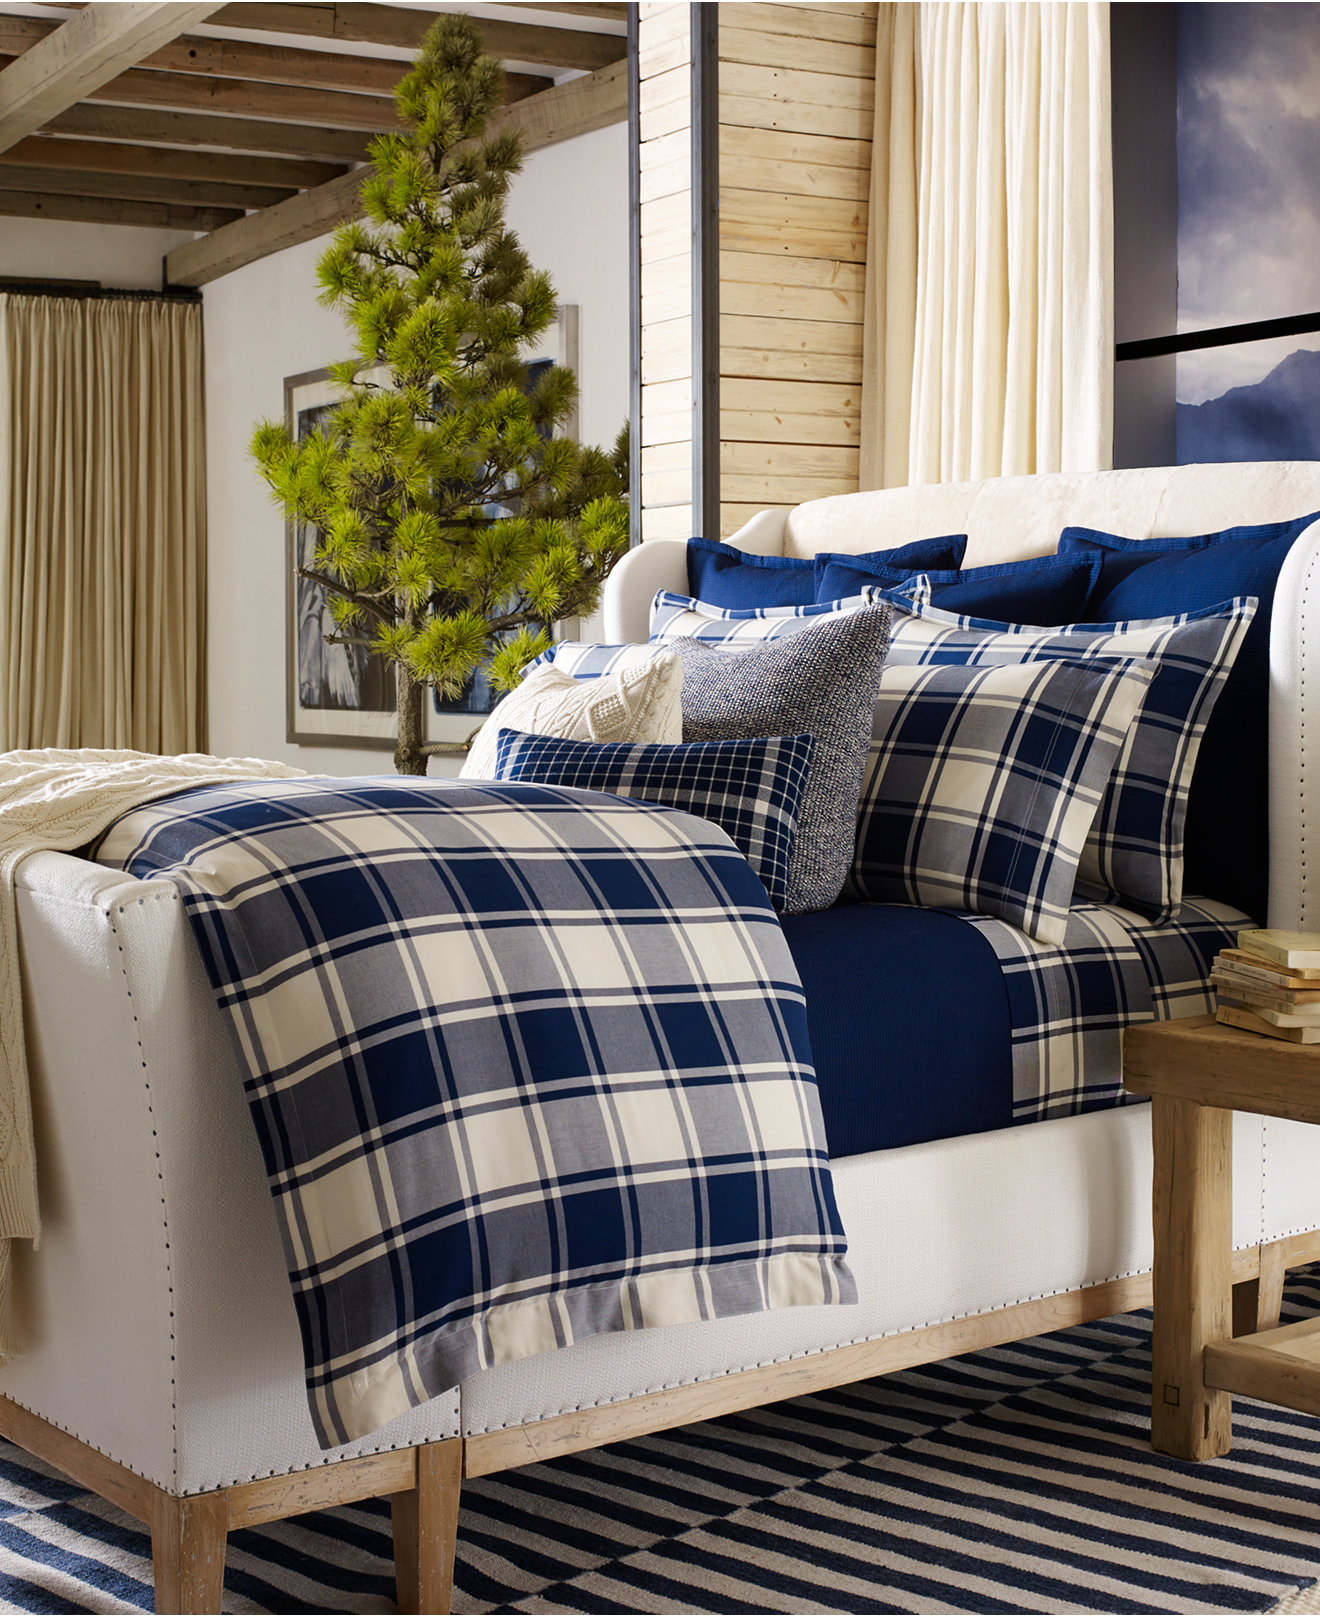 Ralph lauren home collection furniture - Ralph Lauren Winter Harbour Collection Bedding Collections Bed Bath Macy S